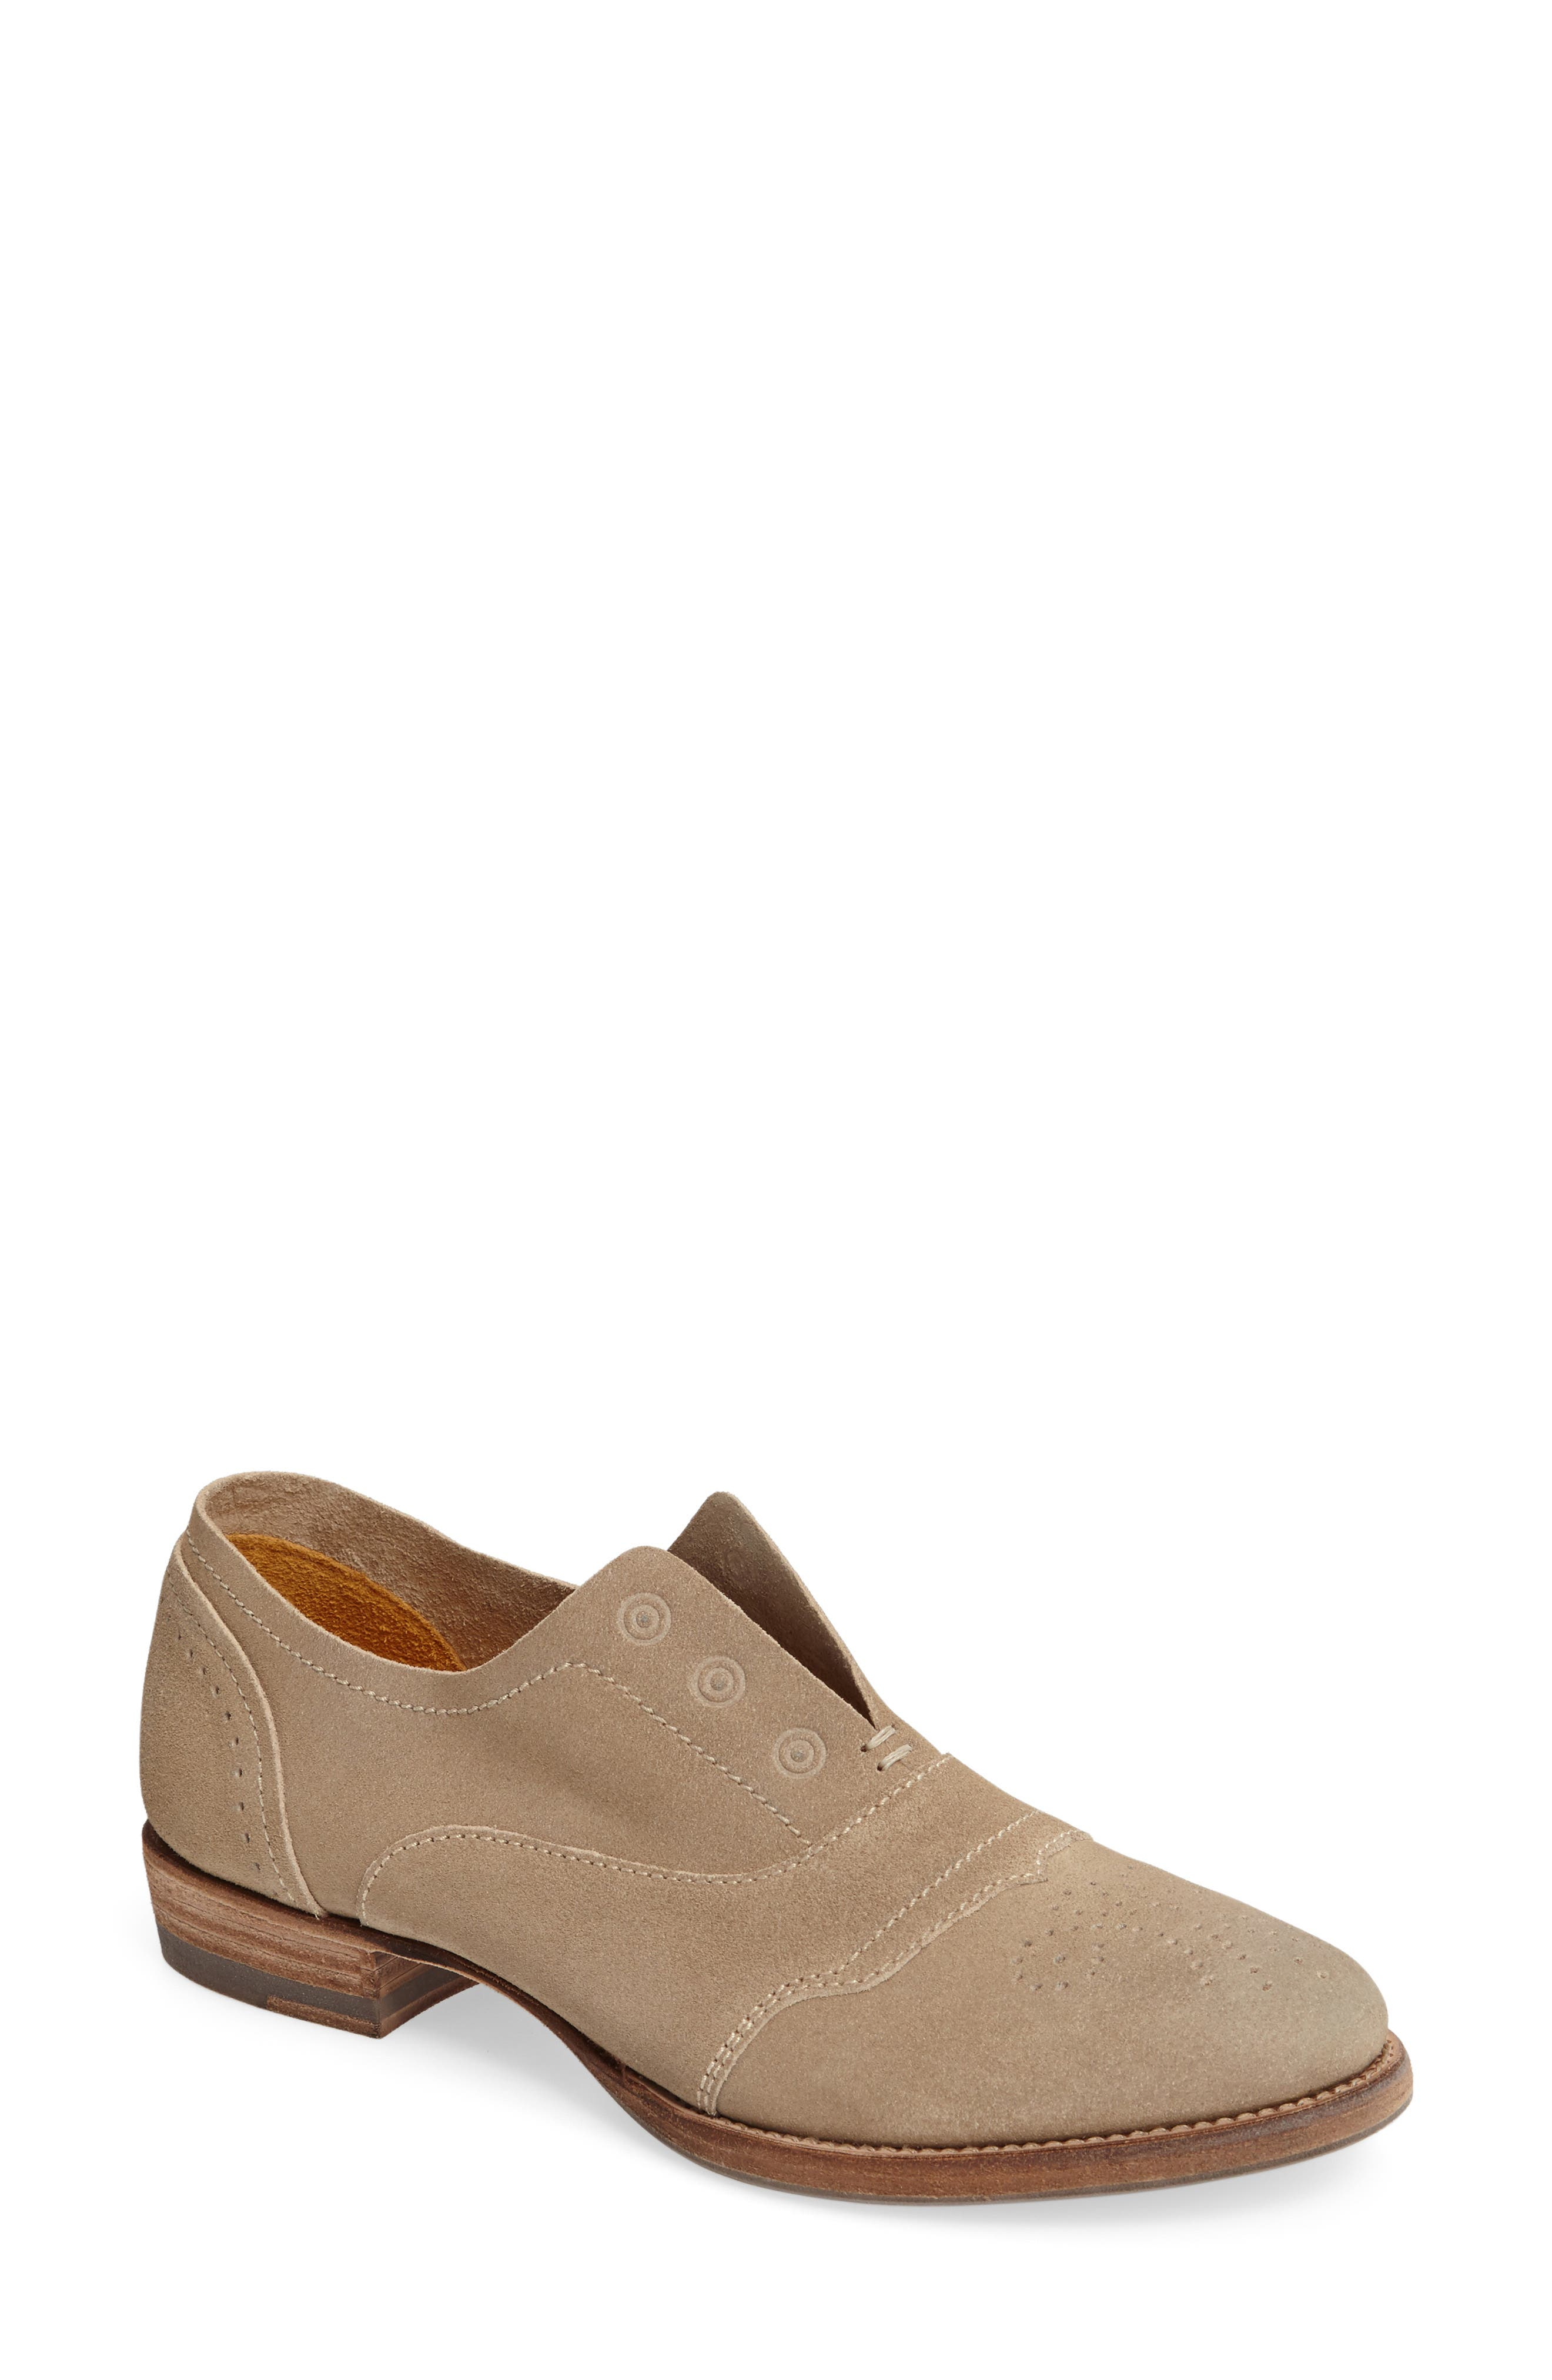 'HL55' Slip-On Oxford,                             Main thumbnail 1, color,                             Beige Leather